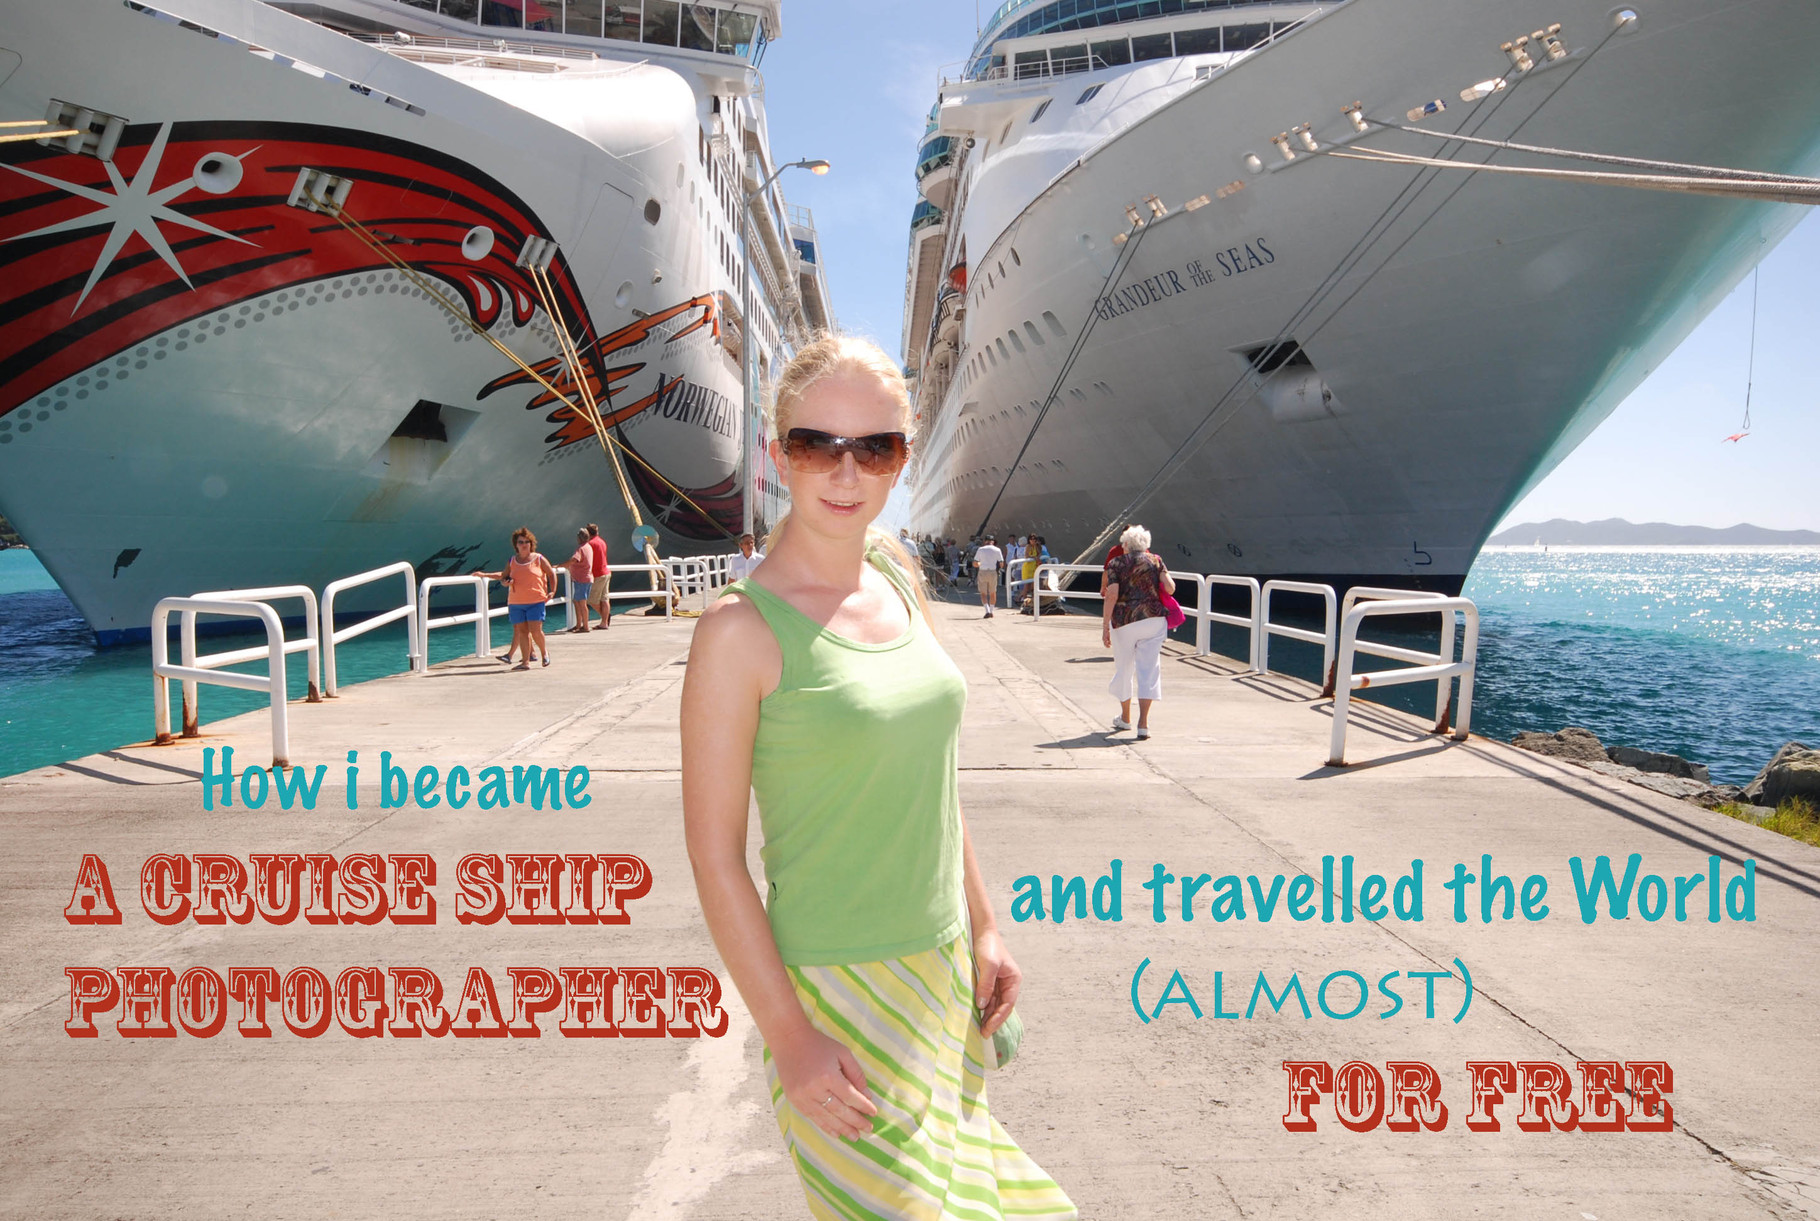 HOW I BECAME A CRUISE SHIP PHOTOGRAPHER AND TRAVELLED THE WORLD ALMOST FOR FREE